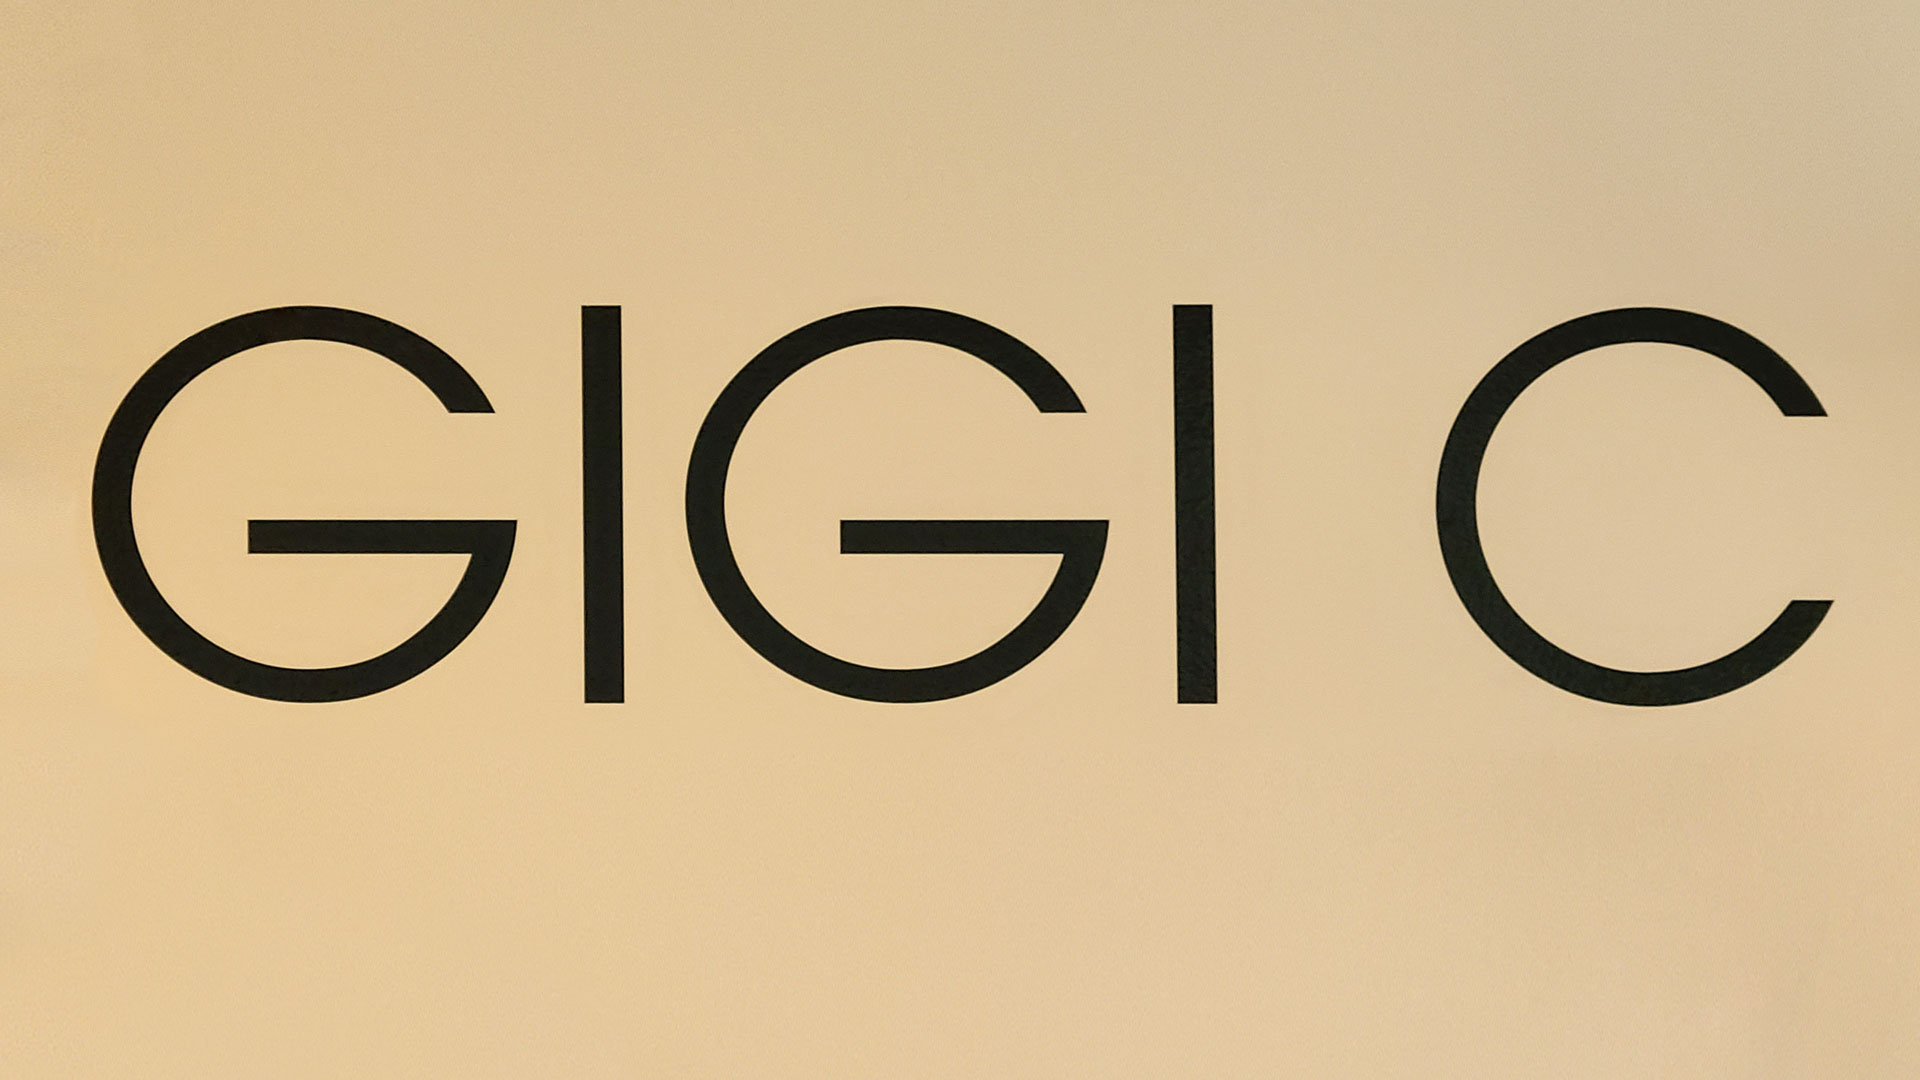 Gigi C custom interior wall lettering signage with the name of the company made of opaque vinyl for clothing store branding